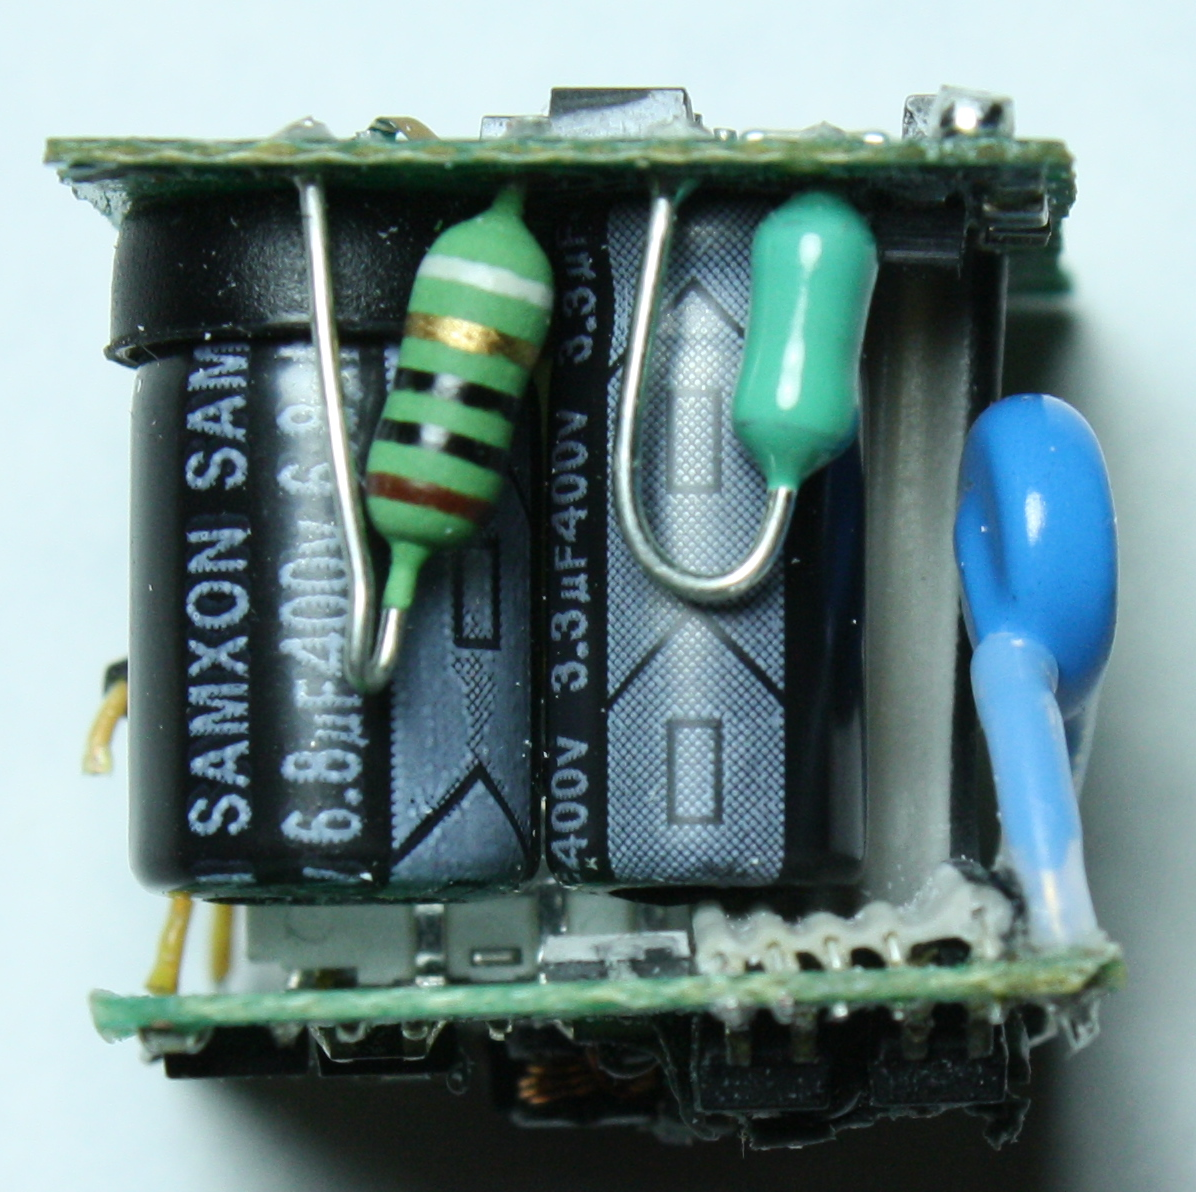 Apple Iphone Charger Teardown Quality In A Tiny Expensive Package Constant Current Battery Circuit This Is Adjustable Showing The Fusible Resistor Striped Inductor Green